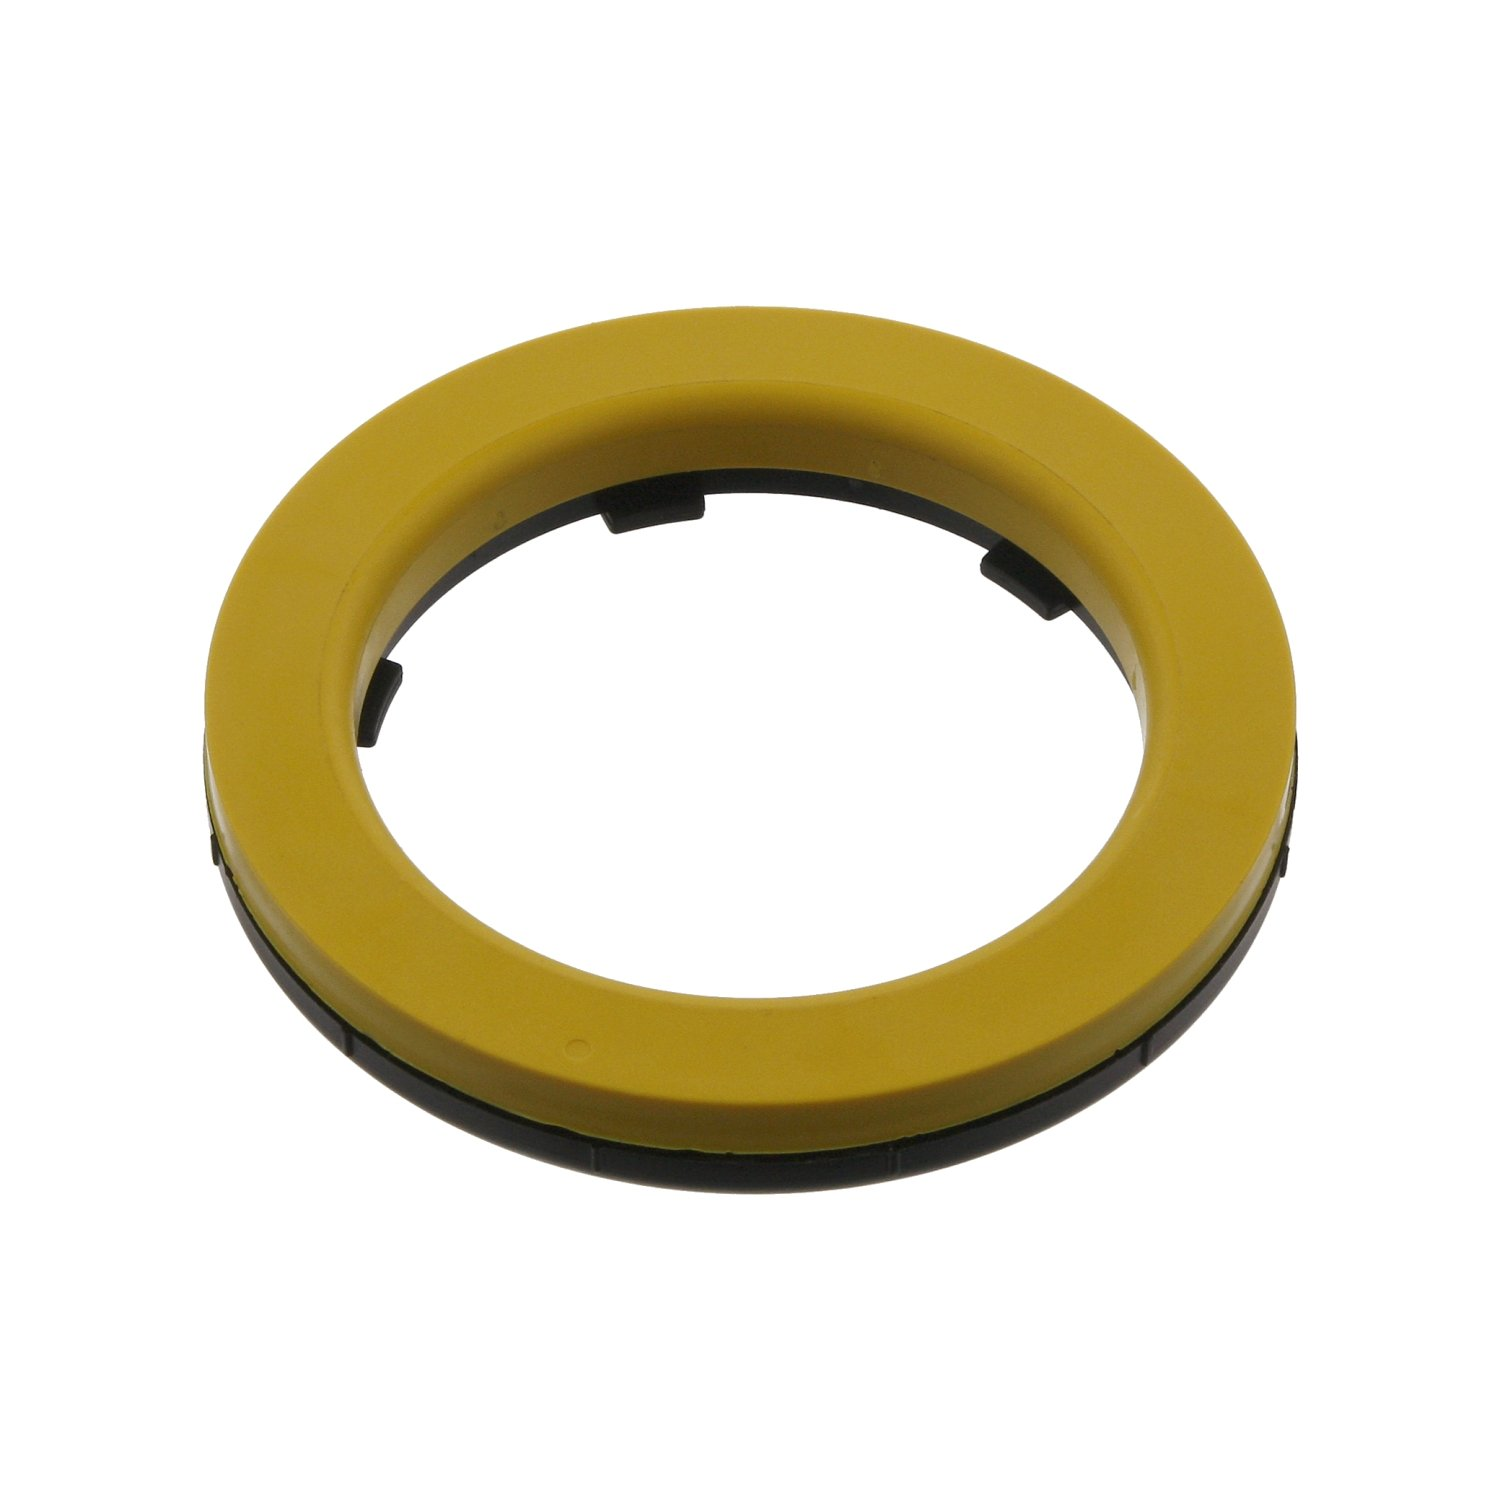 febi bilstein 34626 ball bearing for suspension strut mount (front axle both sides, above) - Pack of 1